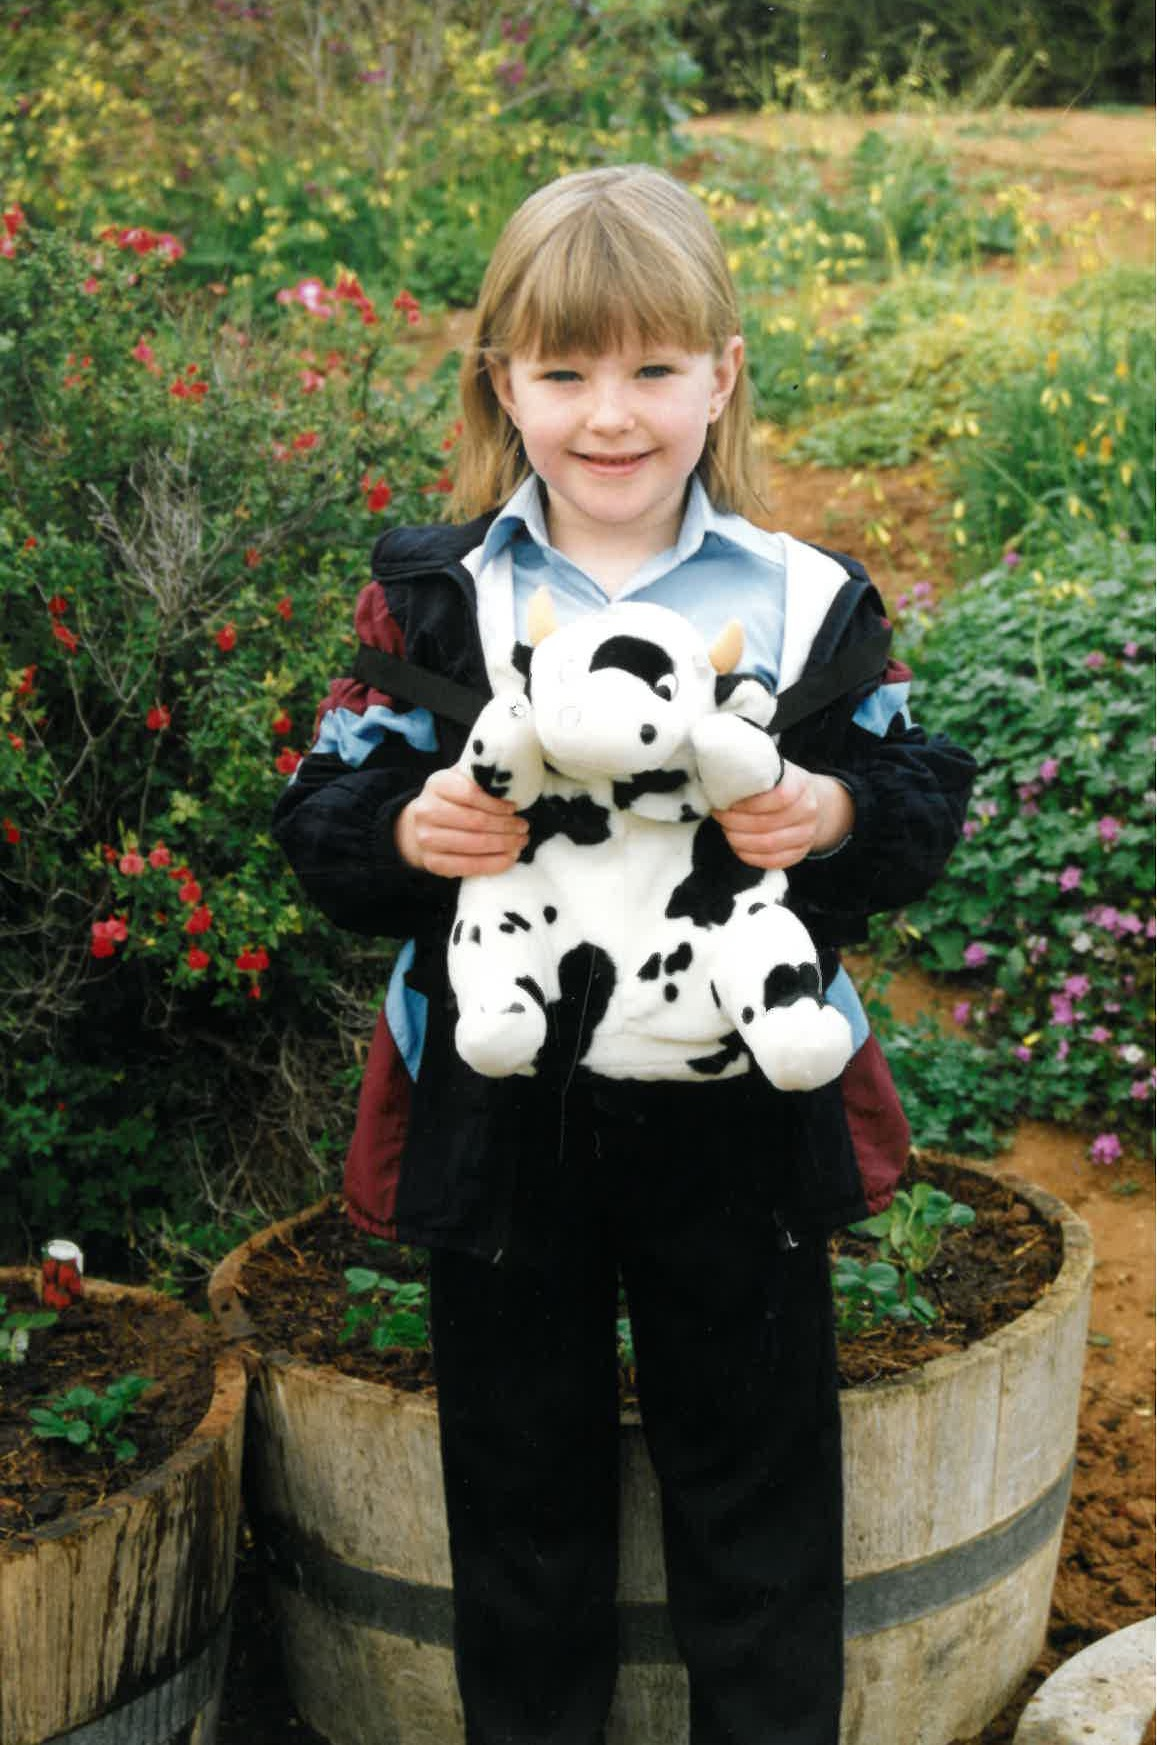 Emily as a child holding her toy cow, image supplied.